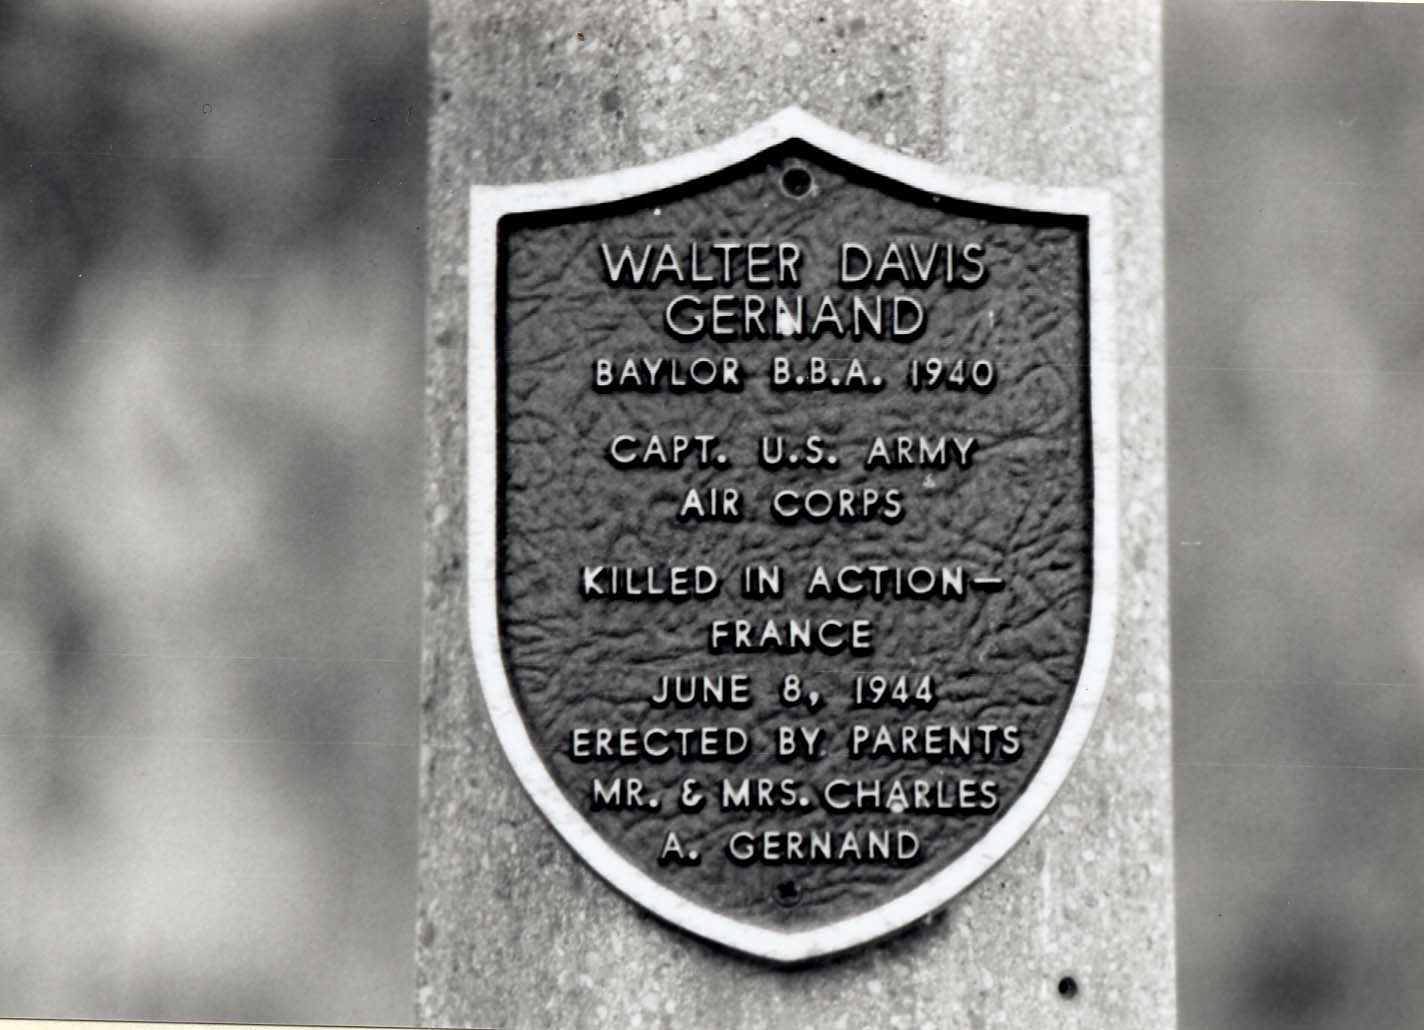 Walter Davis Gernand plaque on a memorial lamppost at Baylor University